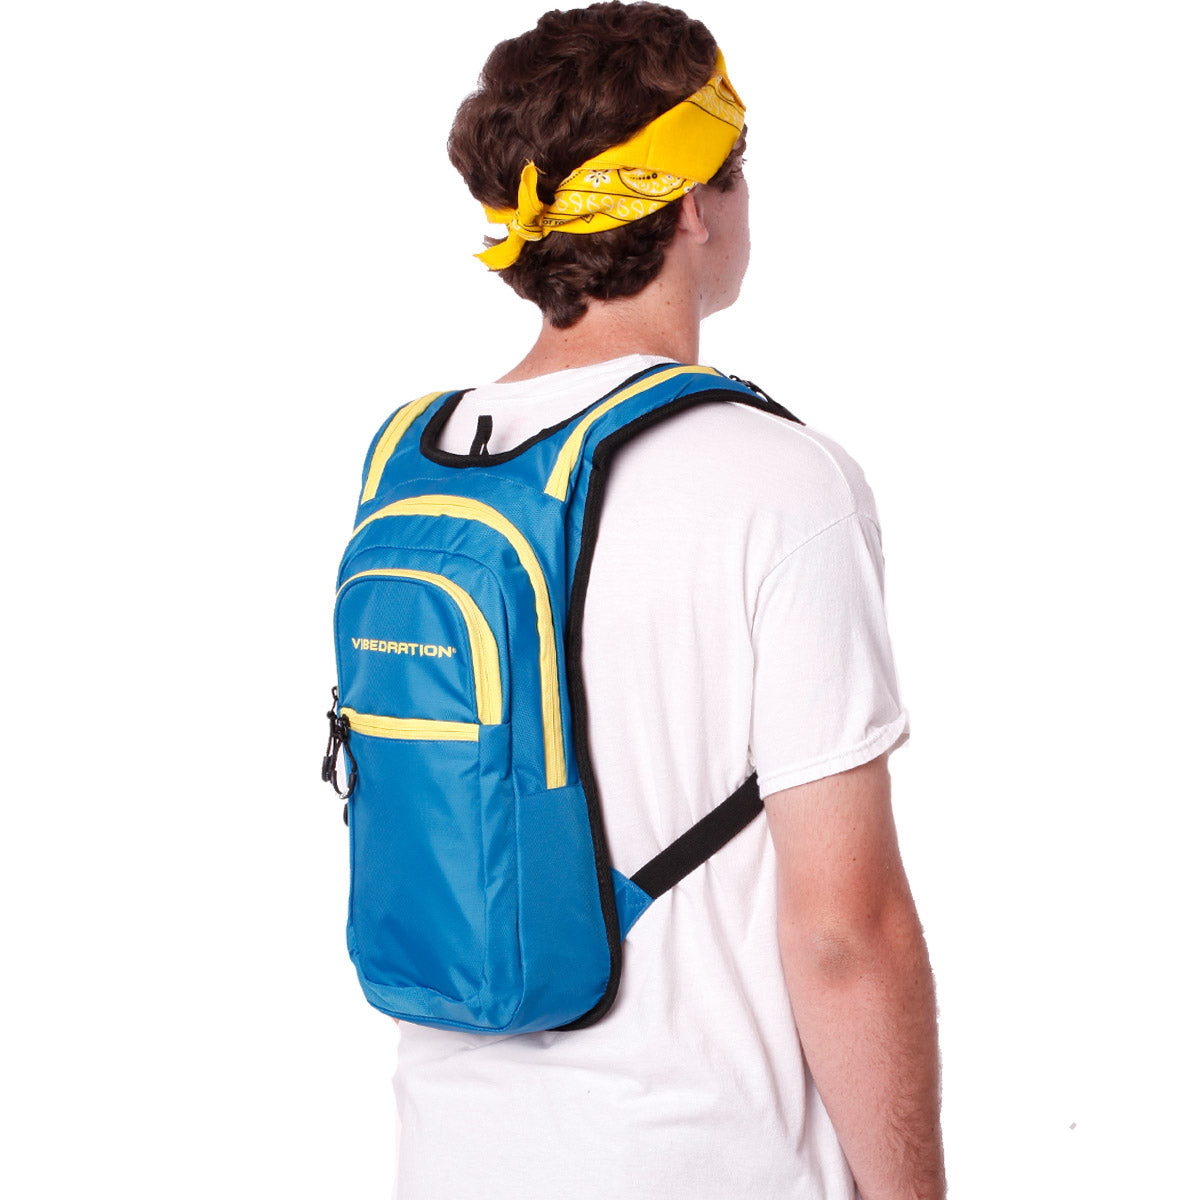 Side view of male wearing baby blue and yellow hydration pack with three pockets.